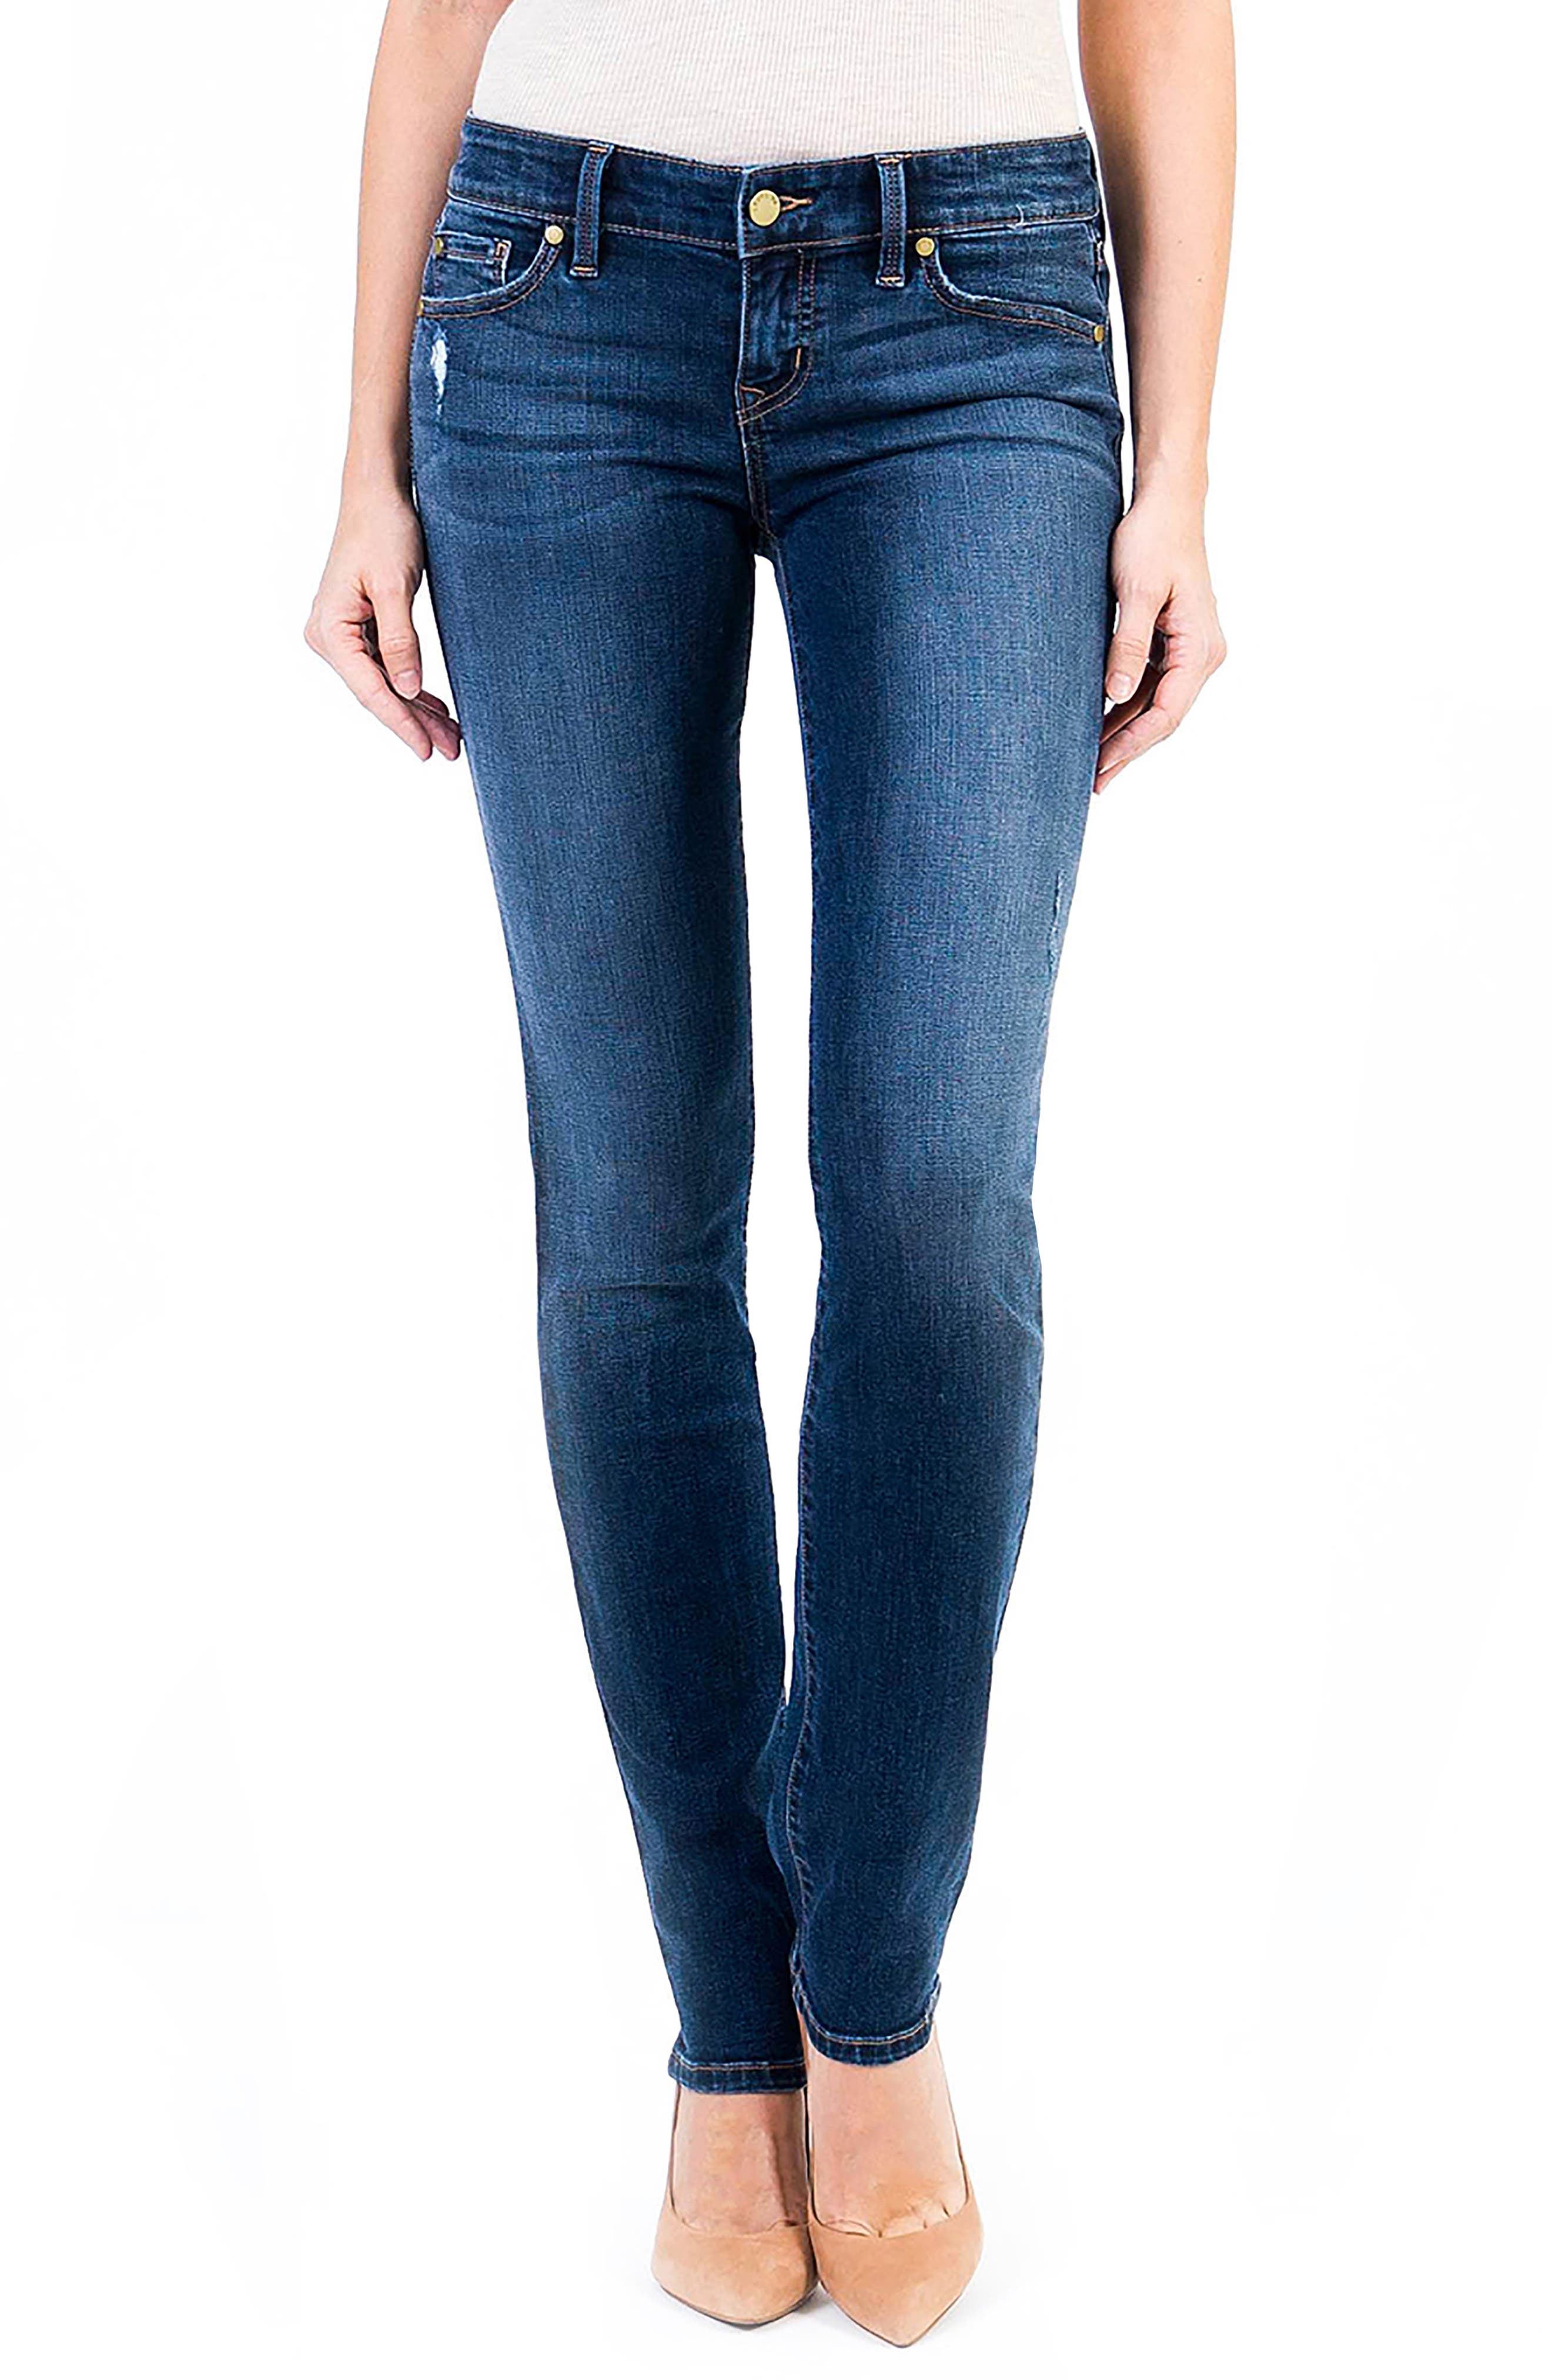 Main Image - Level 99 Lily Stretch Skinny Jeans